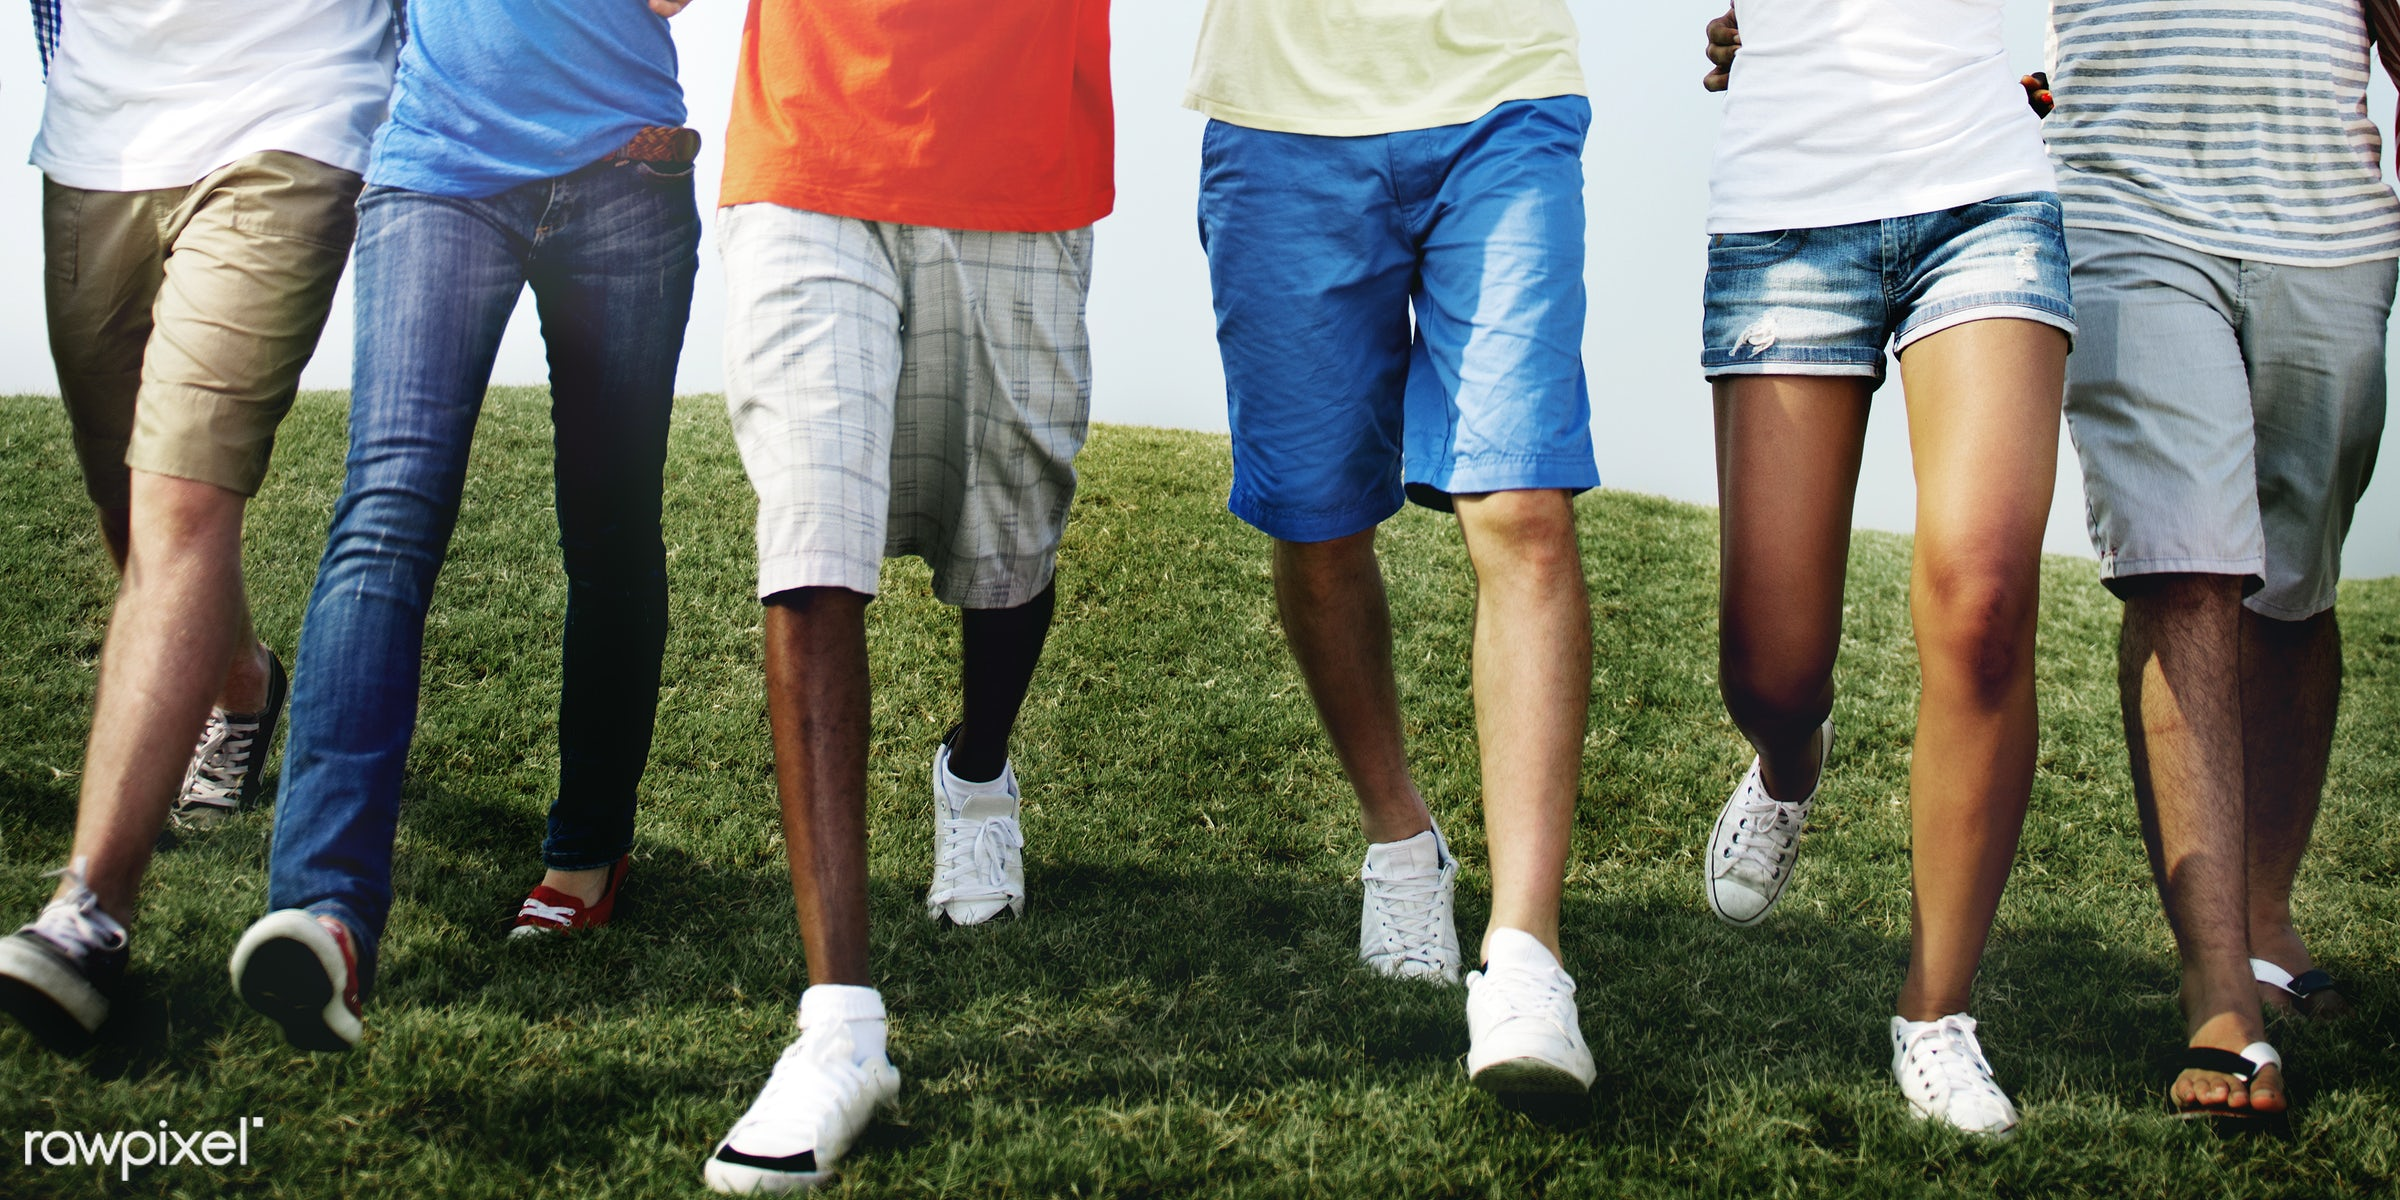 friendship, community, support, concept, african descent, asian ethnicity, casual, celebration, cheerful, colorful, day,...